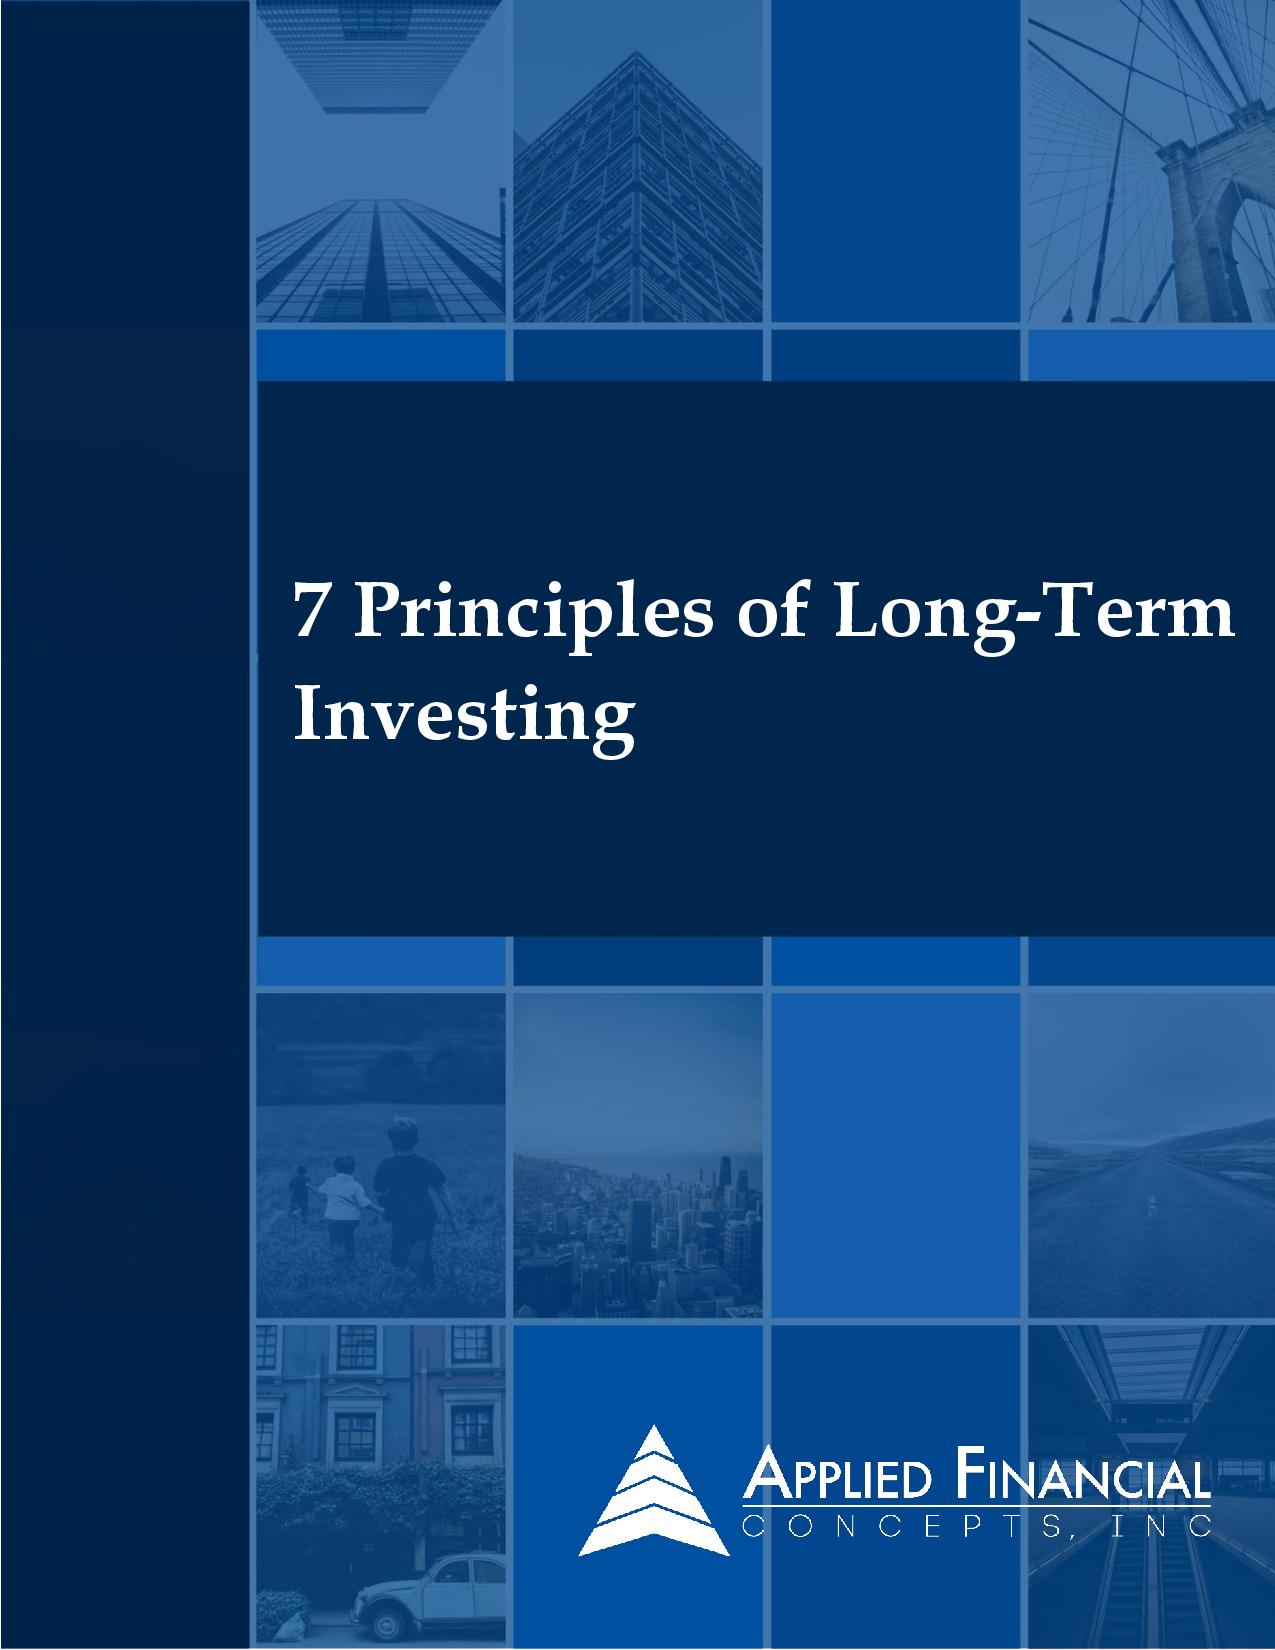 7 Principal of Long Term investing picture.jpg